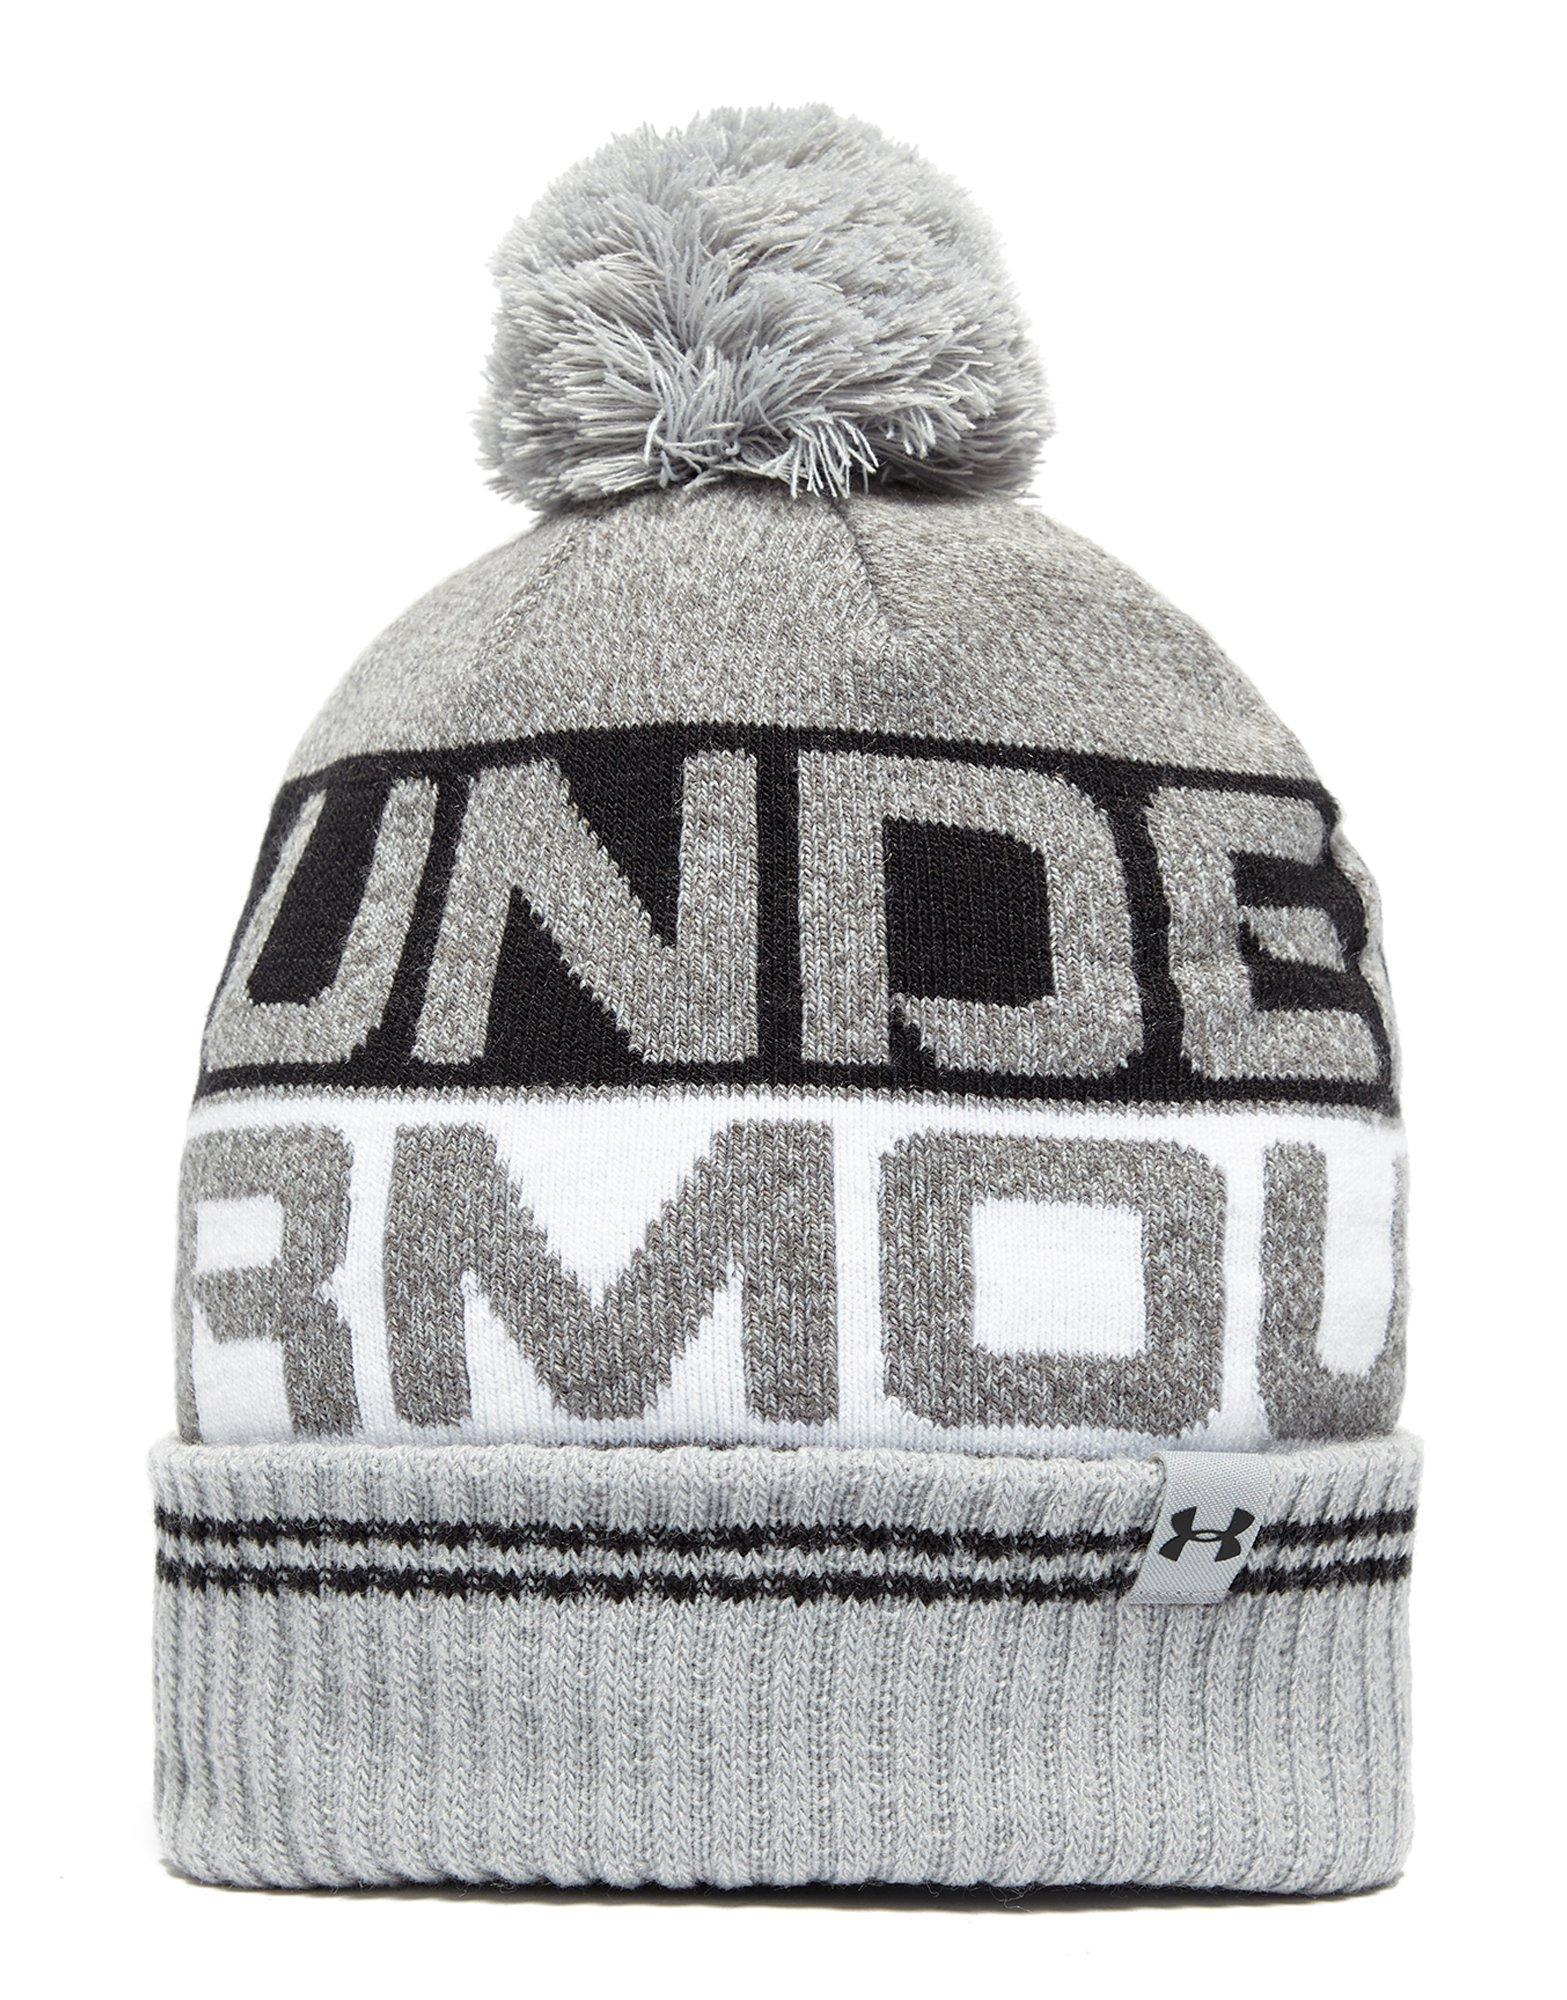 1cfd90daa9a Lyst - Under Armour Retro Pom 2.0 Beanie Hat in Gray for Men